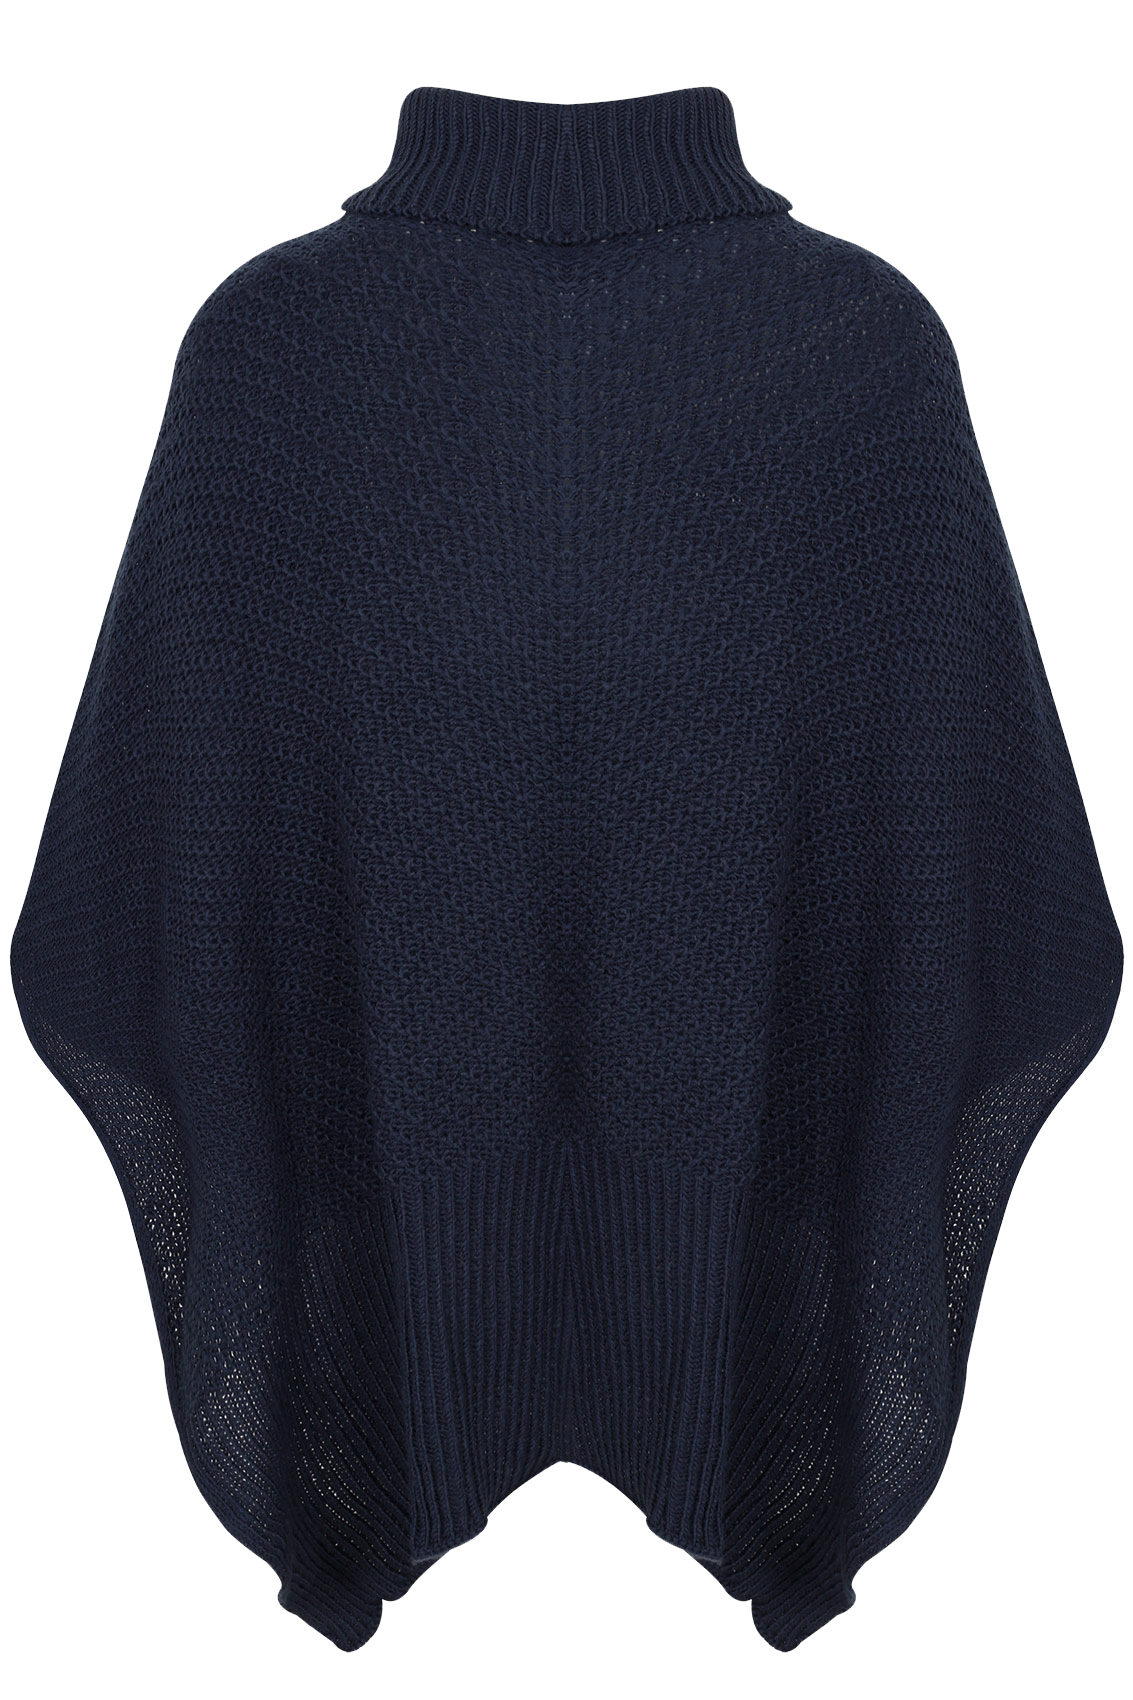 Navy Knitted Cowl Neck Poncho